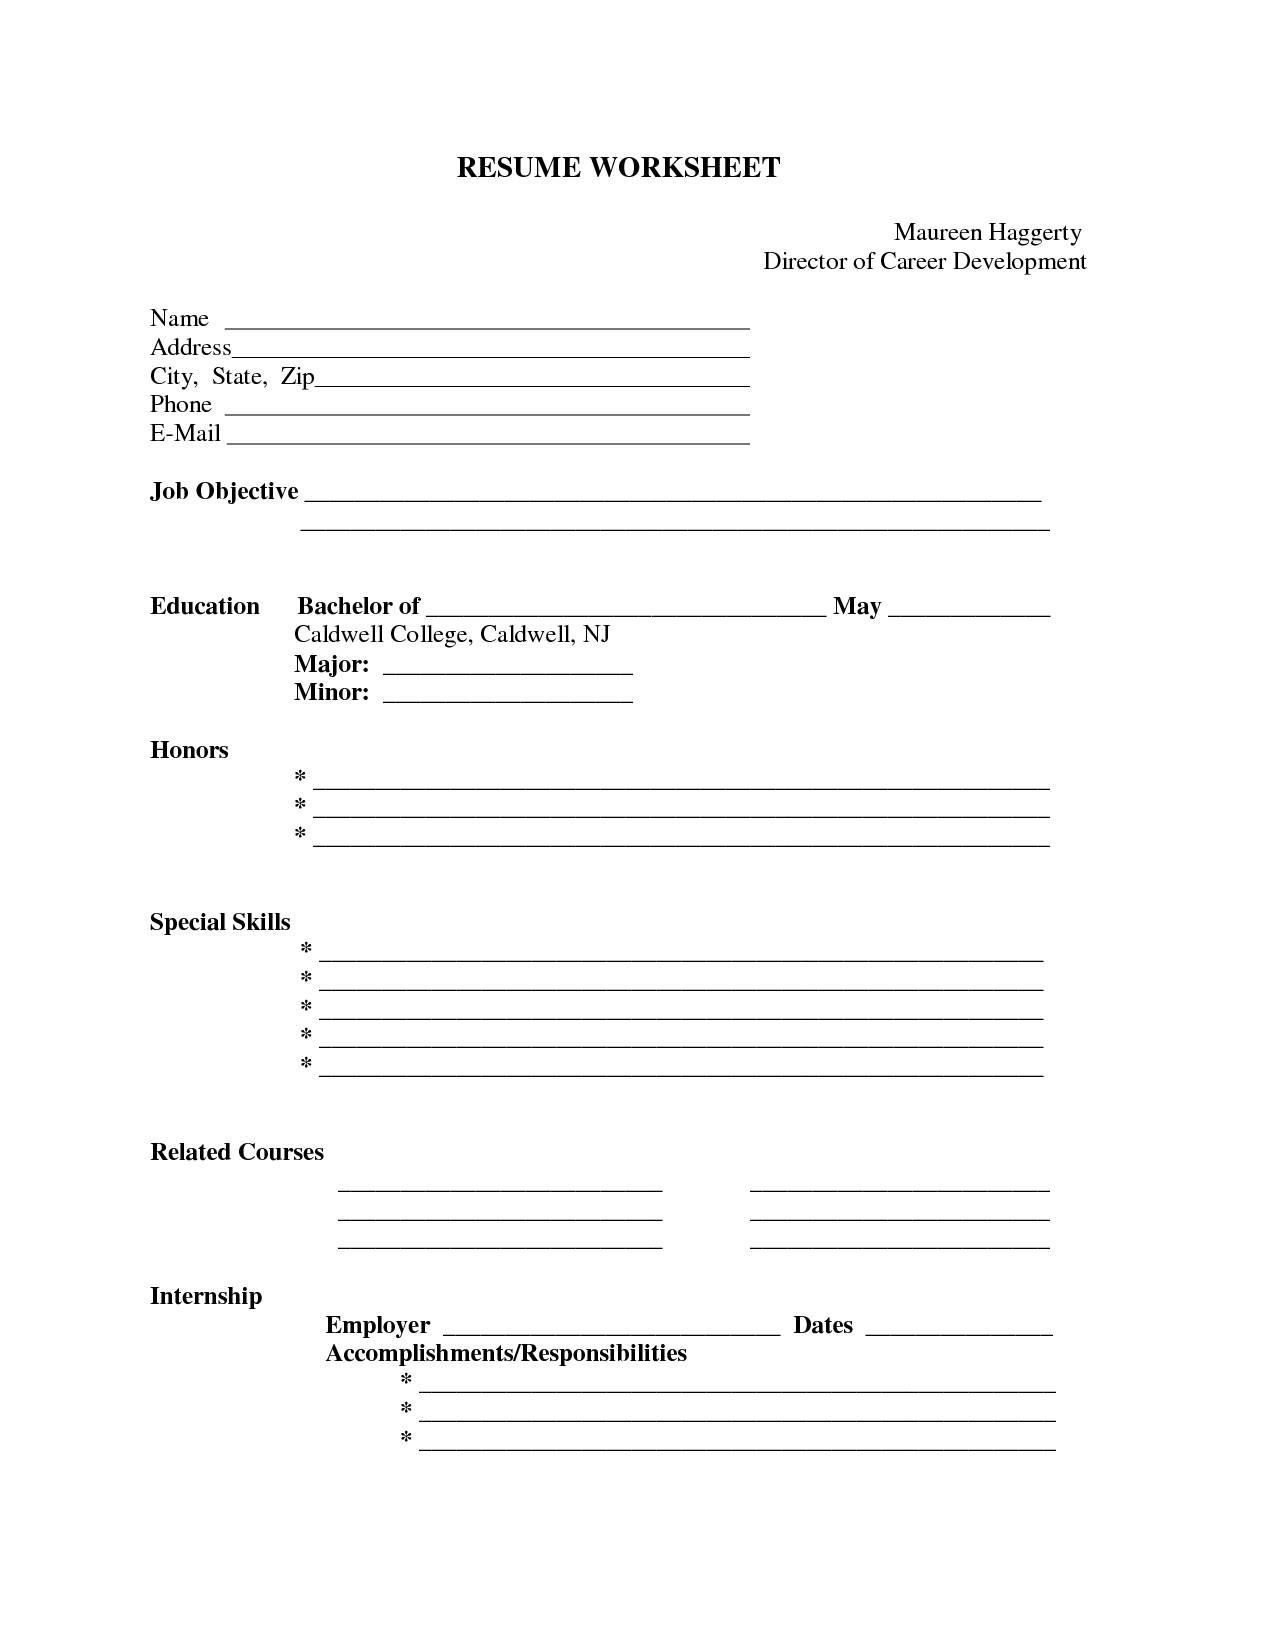 Printable Blank Free Resume Templates